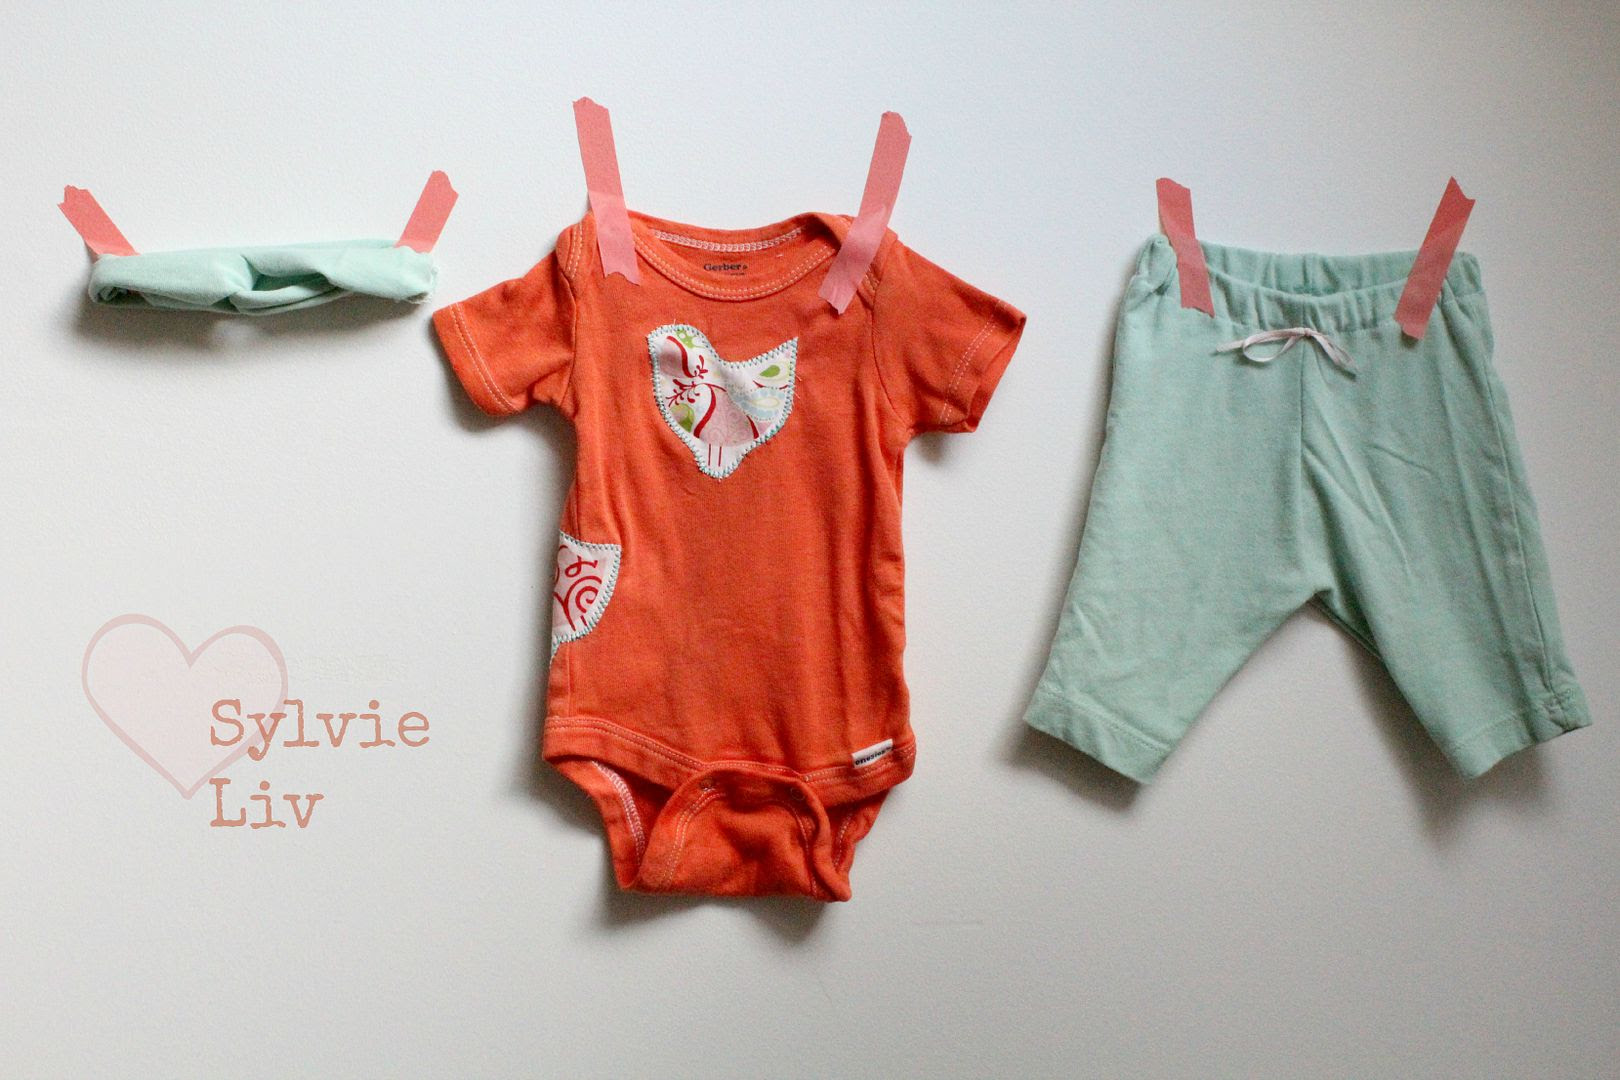 Sylvie Liv Baby Gift Idea Mint And Orange Outfit Diy